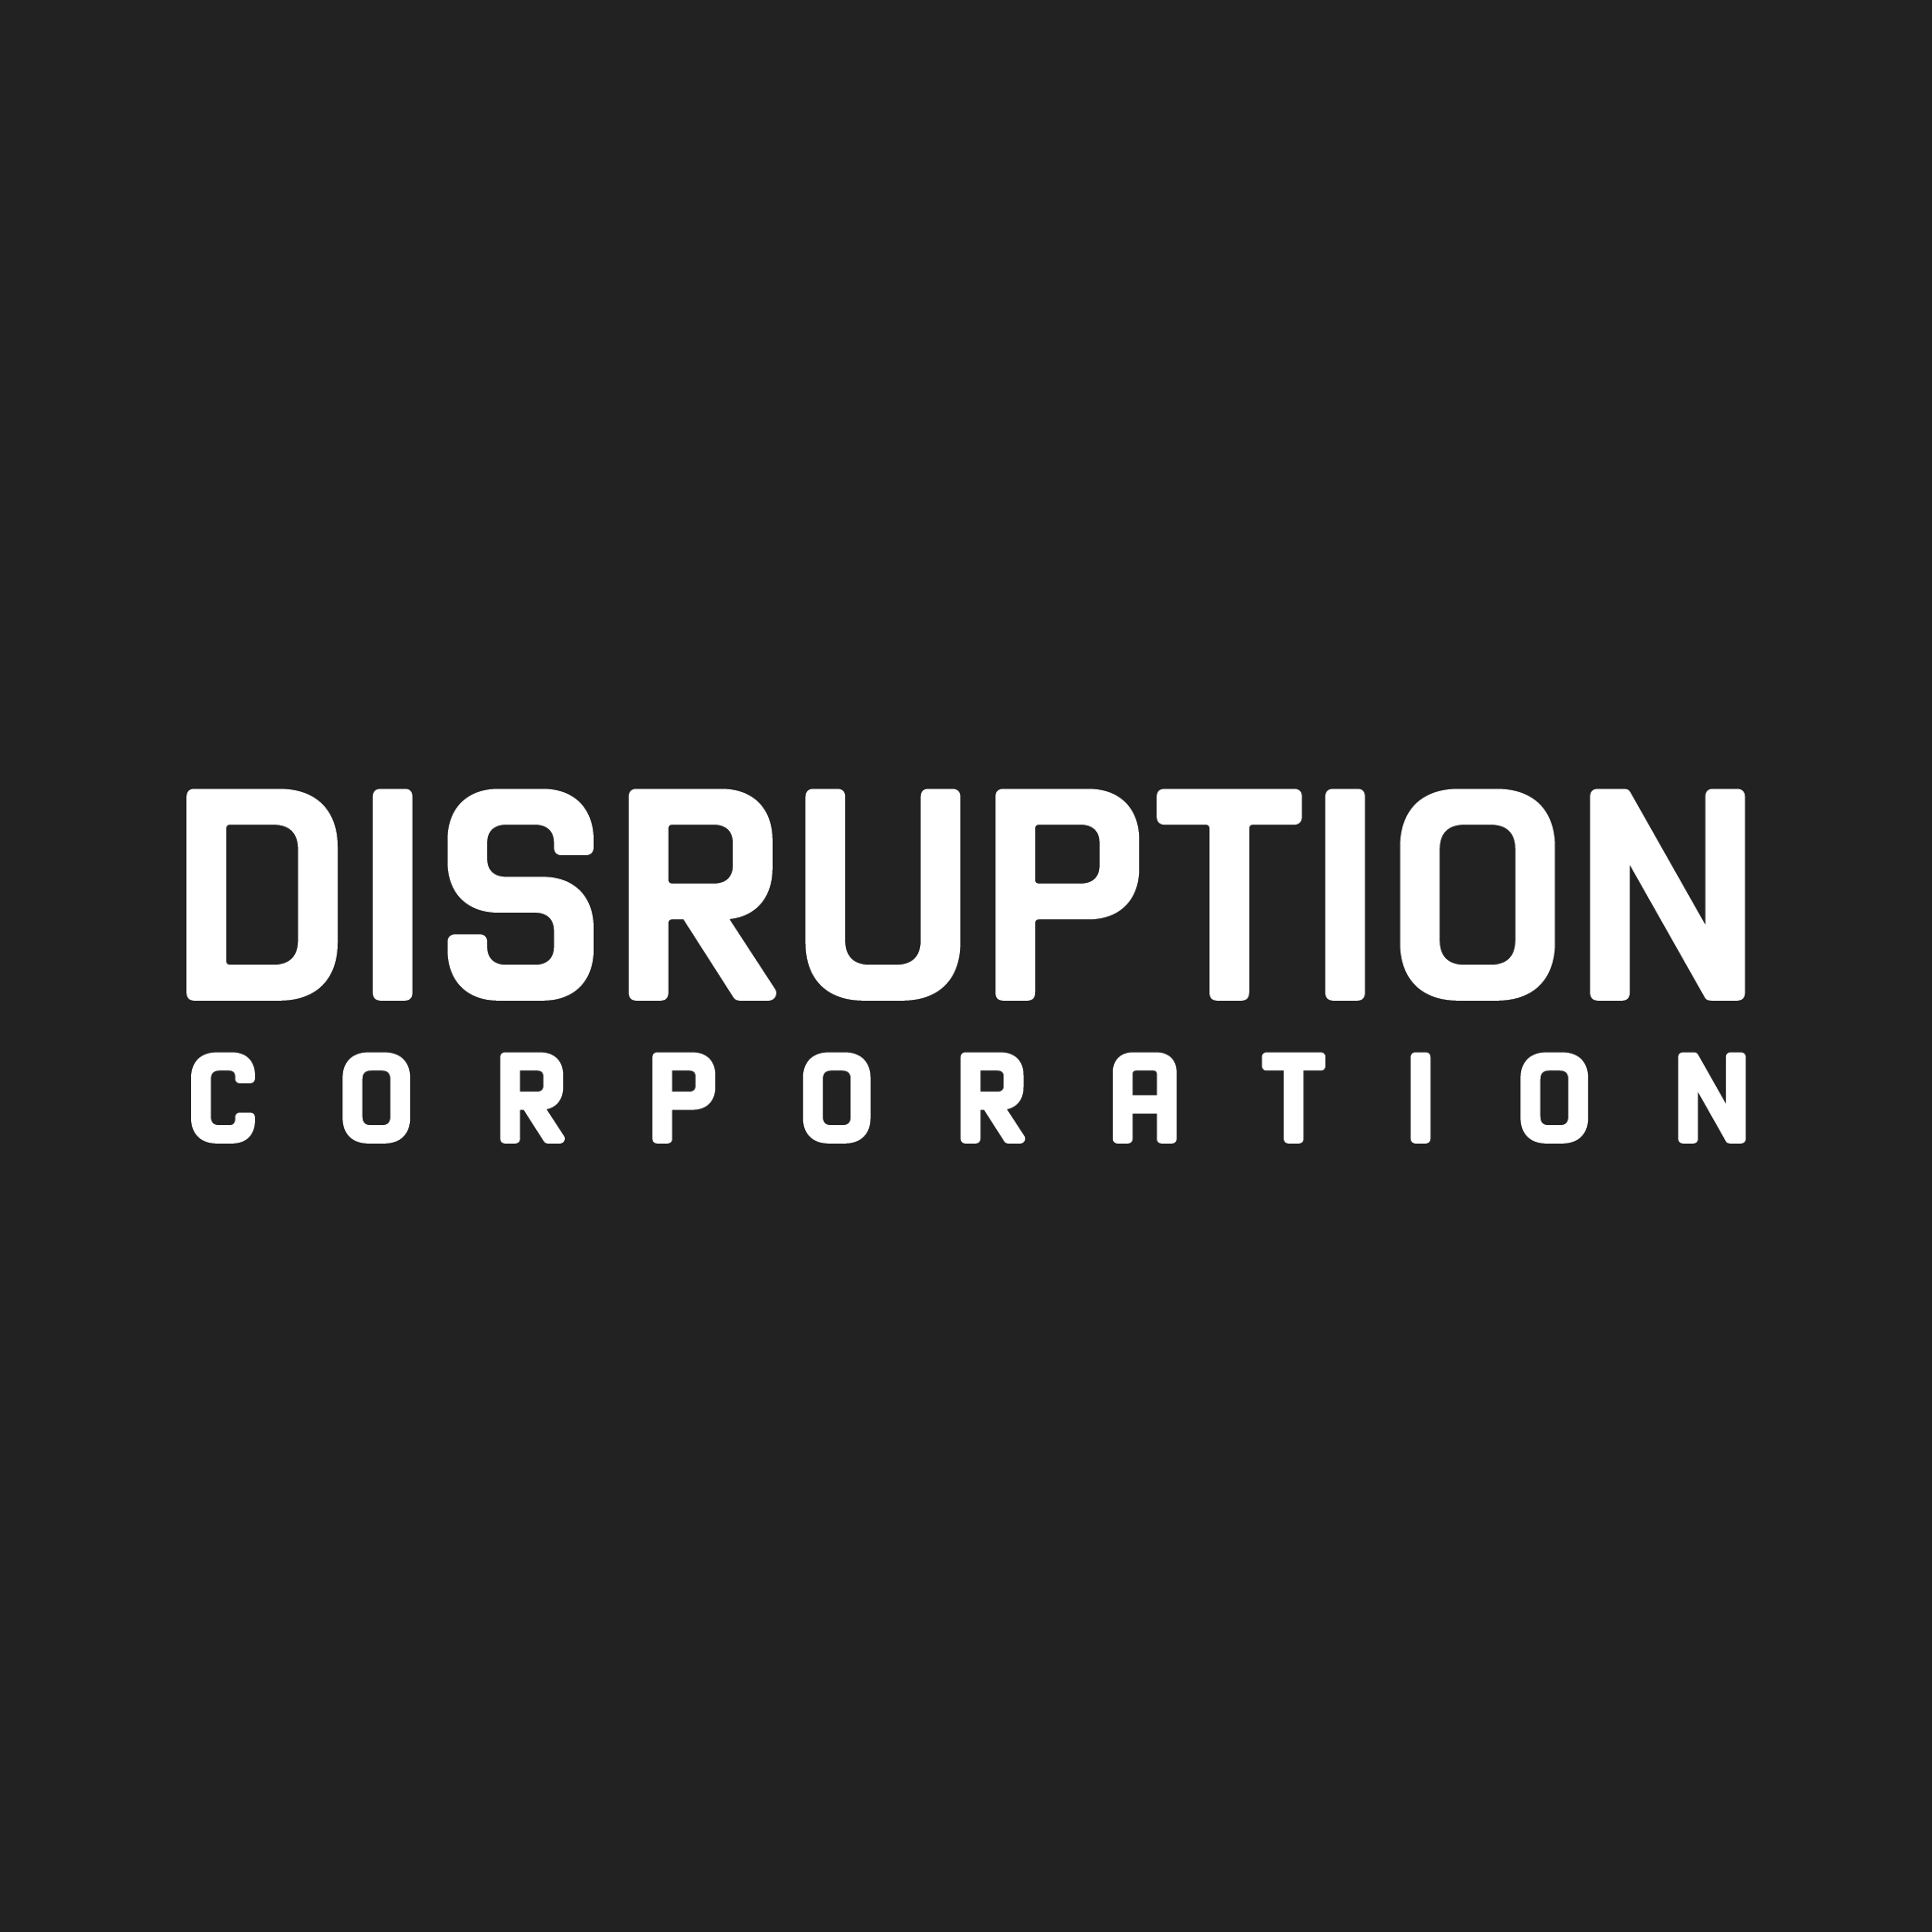 Disruption Corporation